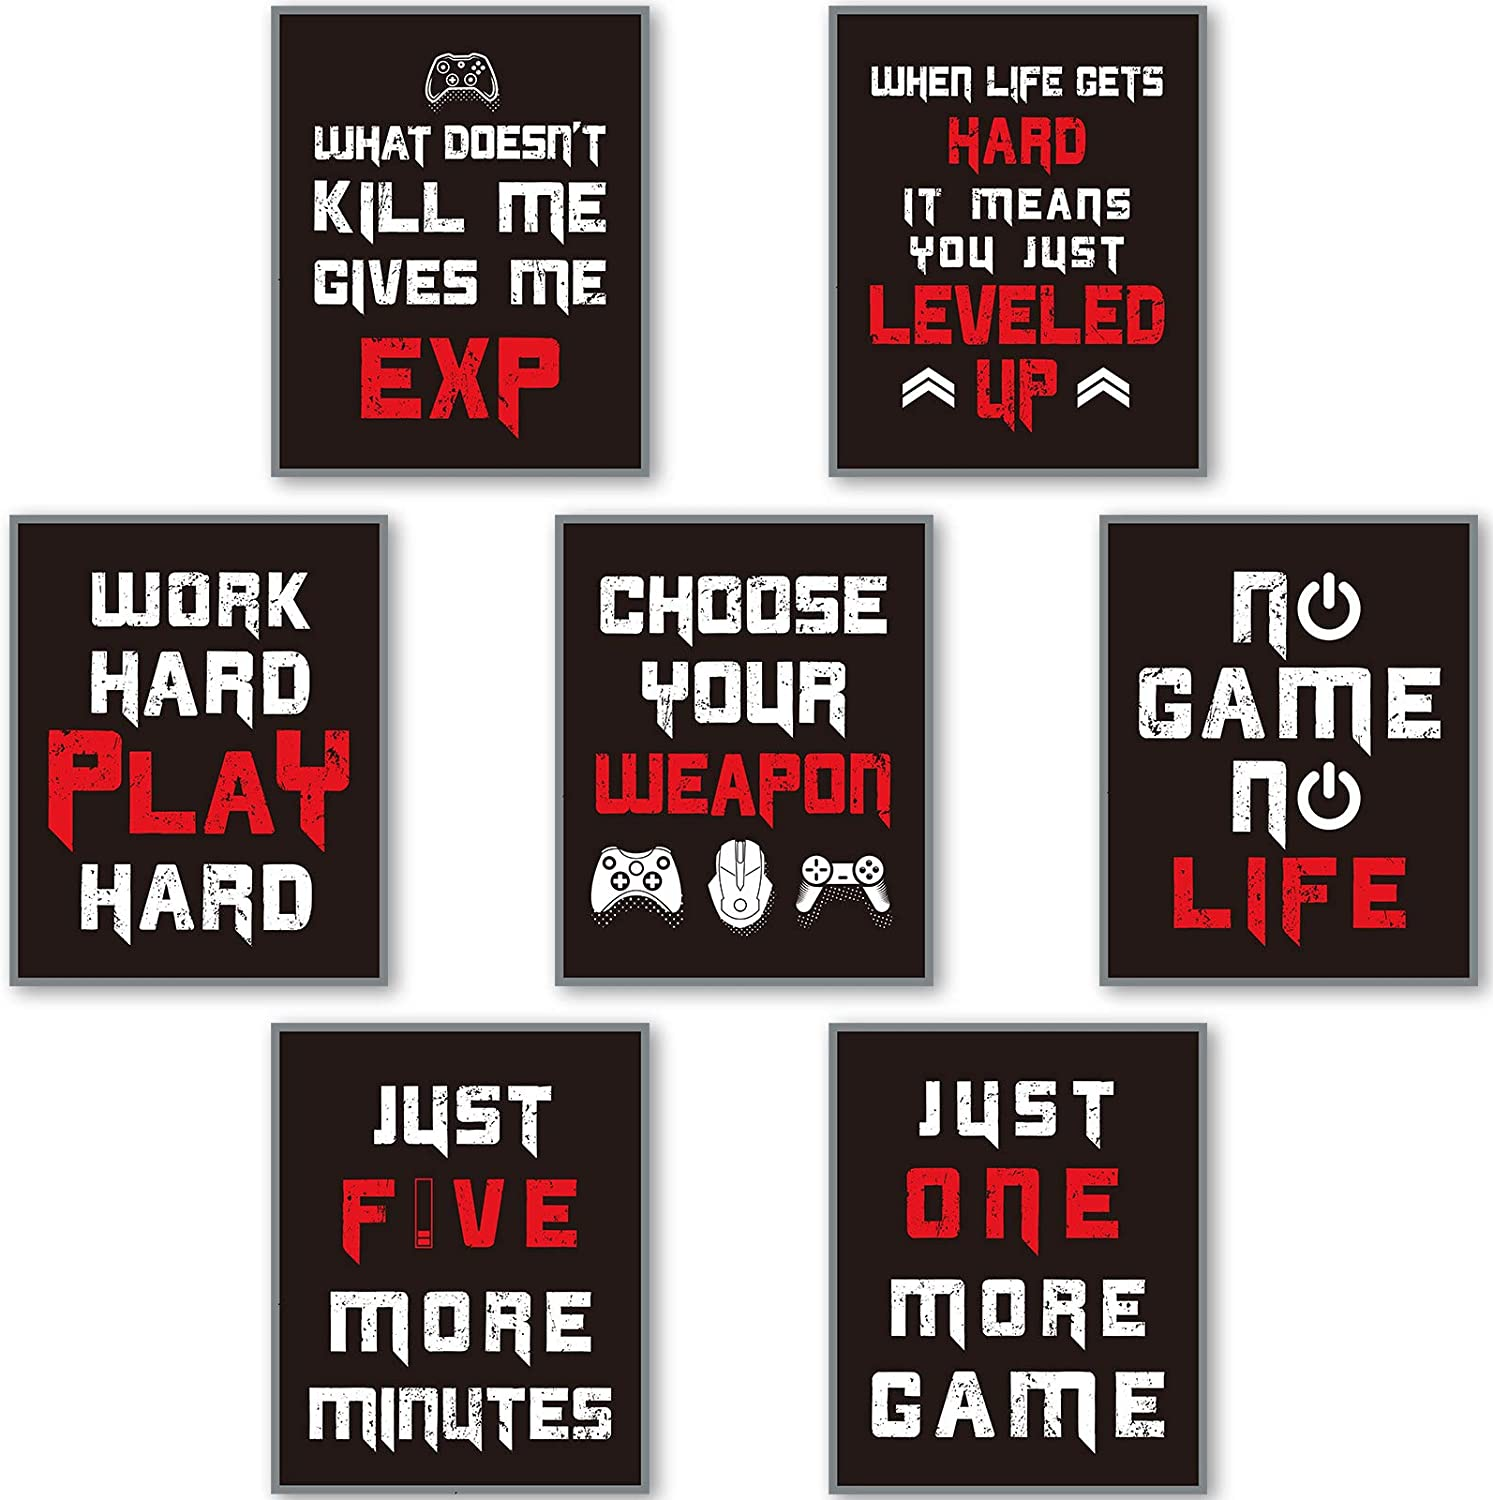 7 Pieces Gaming Art Prints Gaming Posters for Gamer Room Decor, Video Game Gamer Wall Decor for Men Boys Kids Playroom Bedroom Home Decoration Man Cave, Unframed (Black and White)